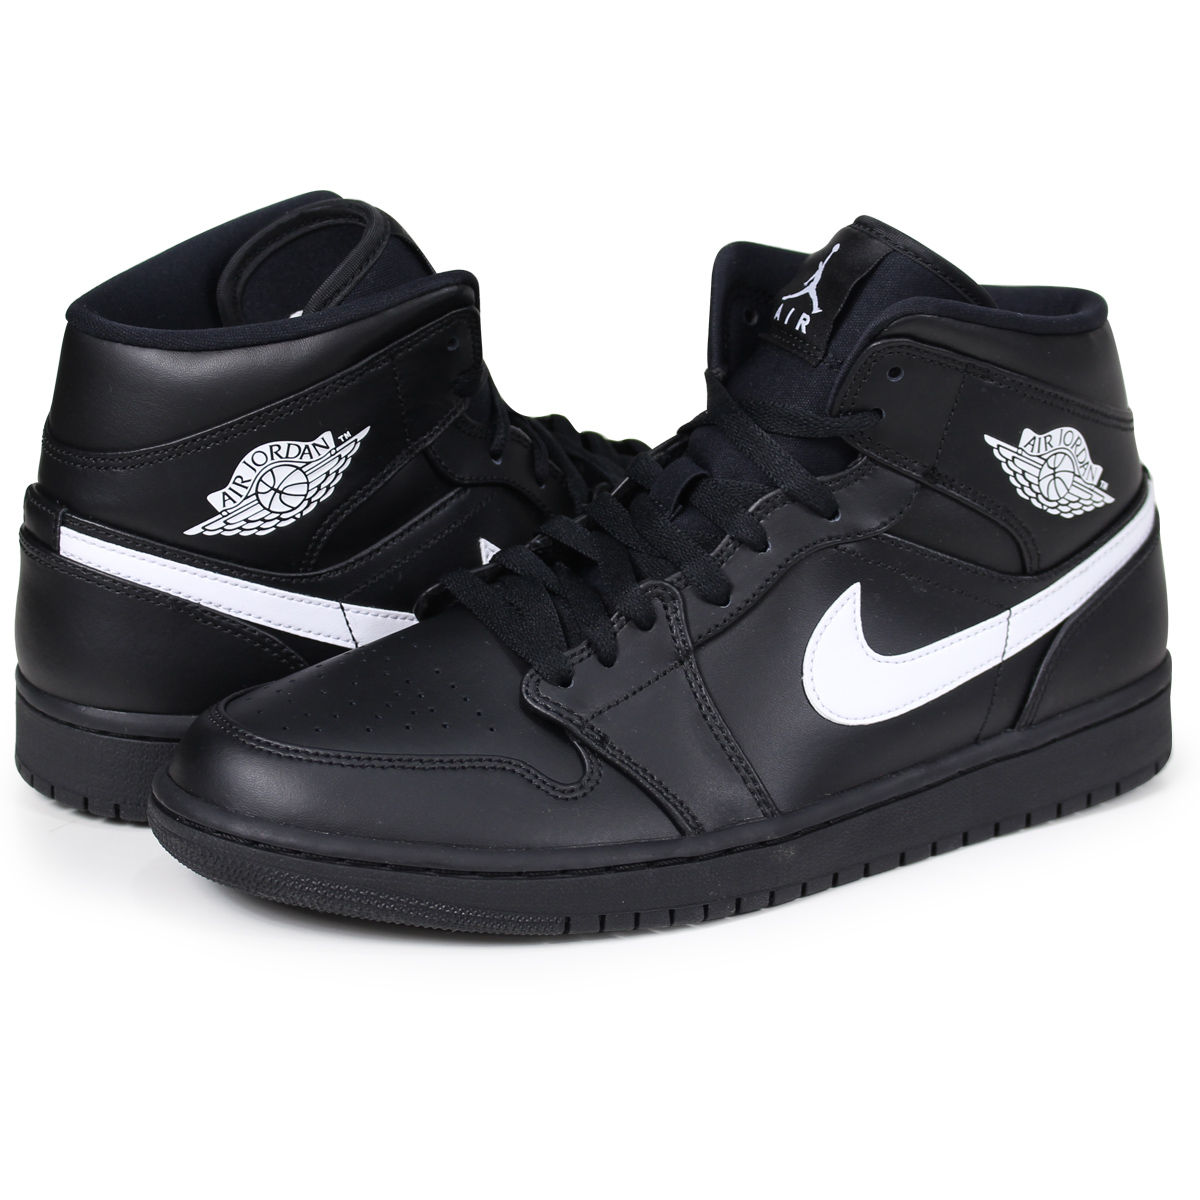 16fdf1d8dc41 Whats up Sports  NIKE AIR JORDAN 1 MID Nike Air Jordan 1 sneakers ...